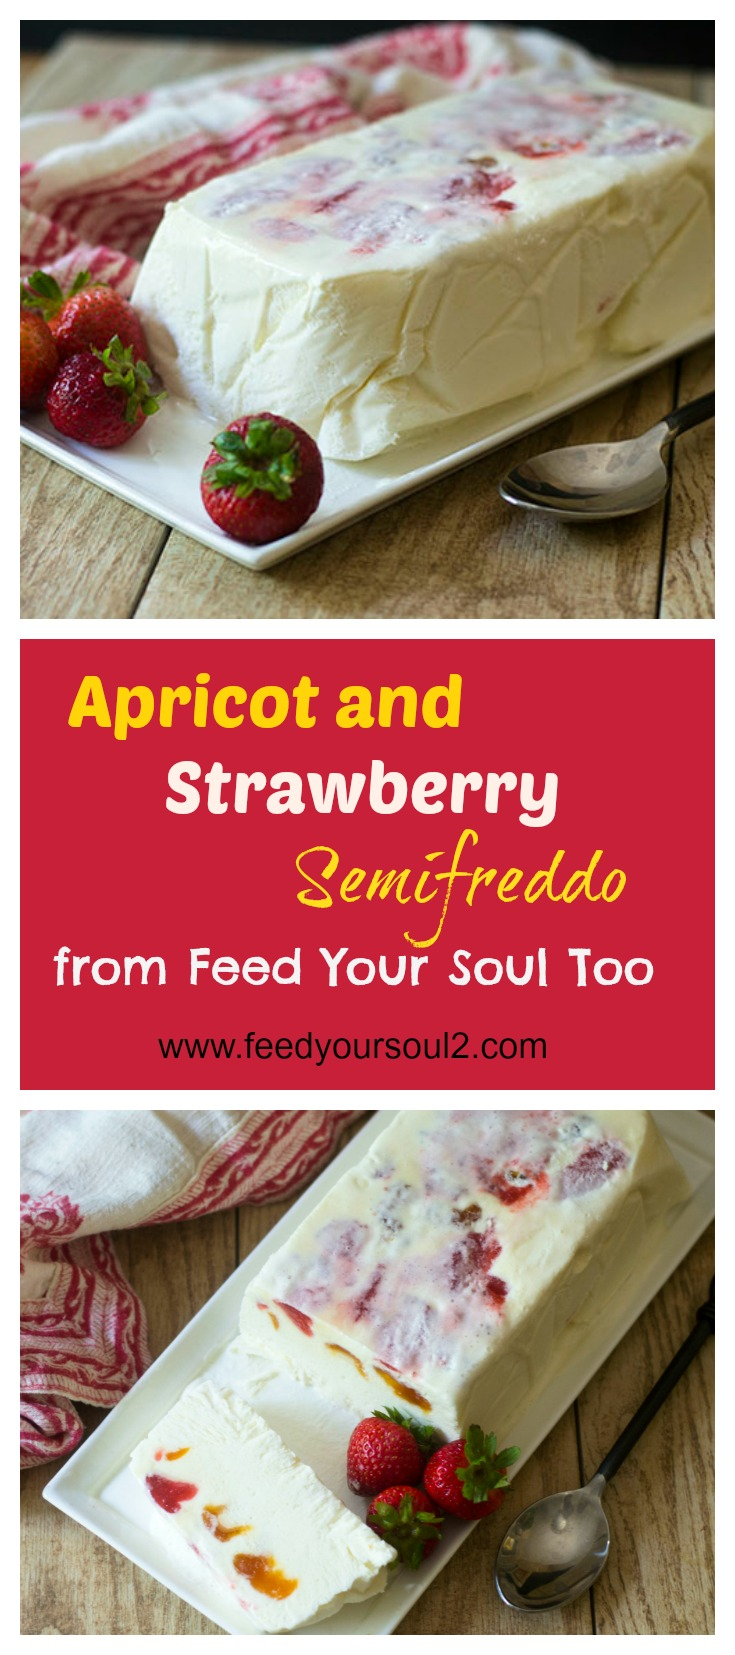 Apricot and Strawberry Semifreddo #dessert #fruit #icecream | feedyoursoul2.com